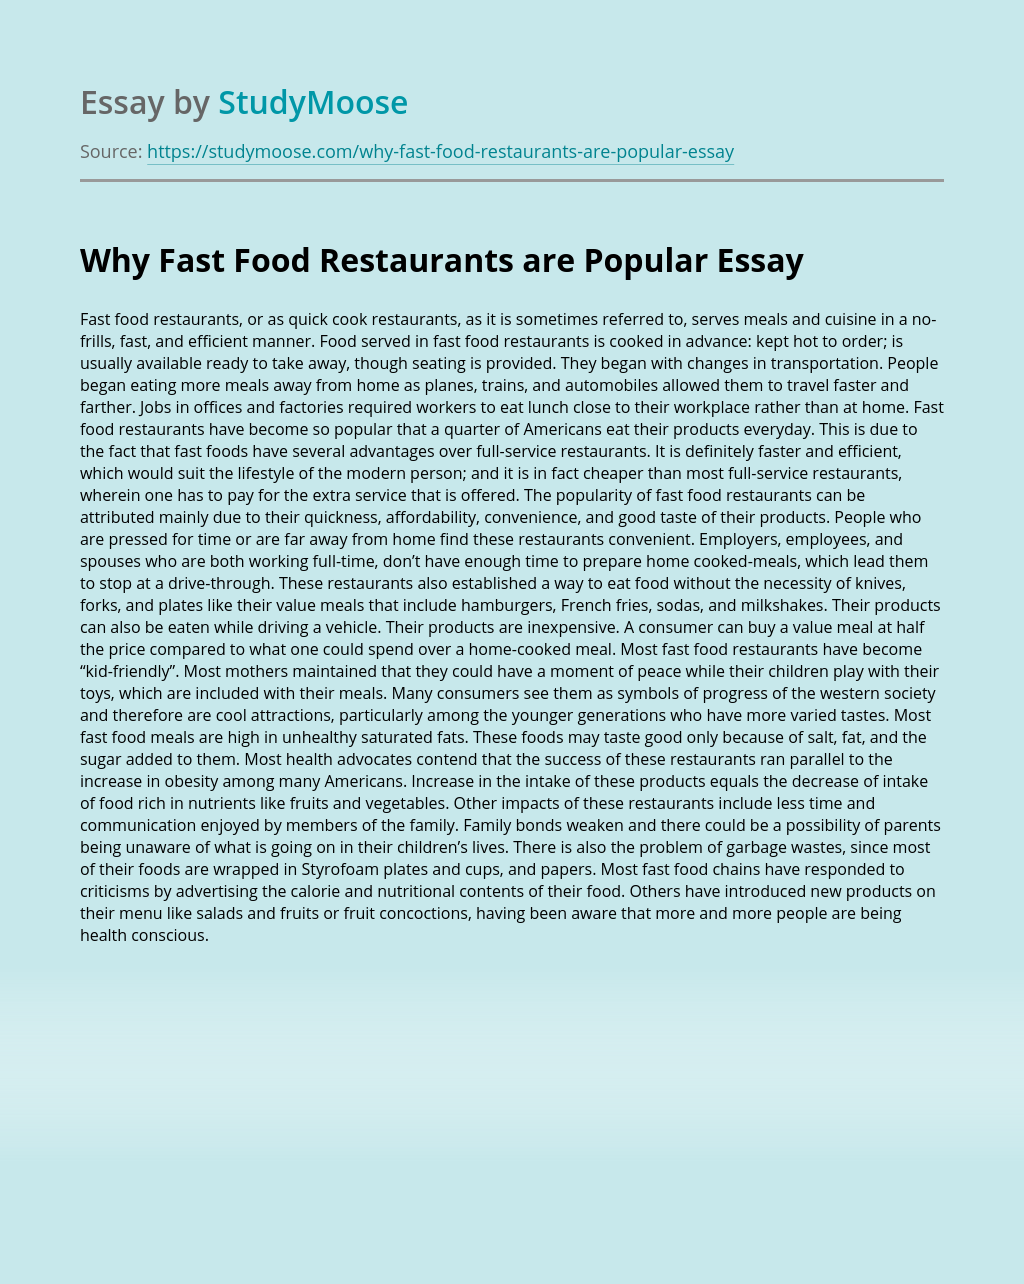 Why Fast Food Restaurants are Popular